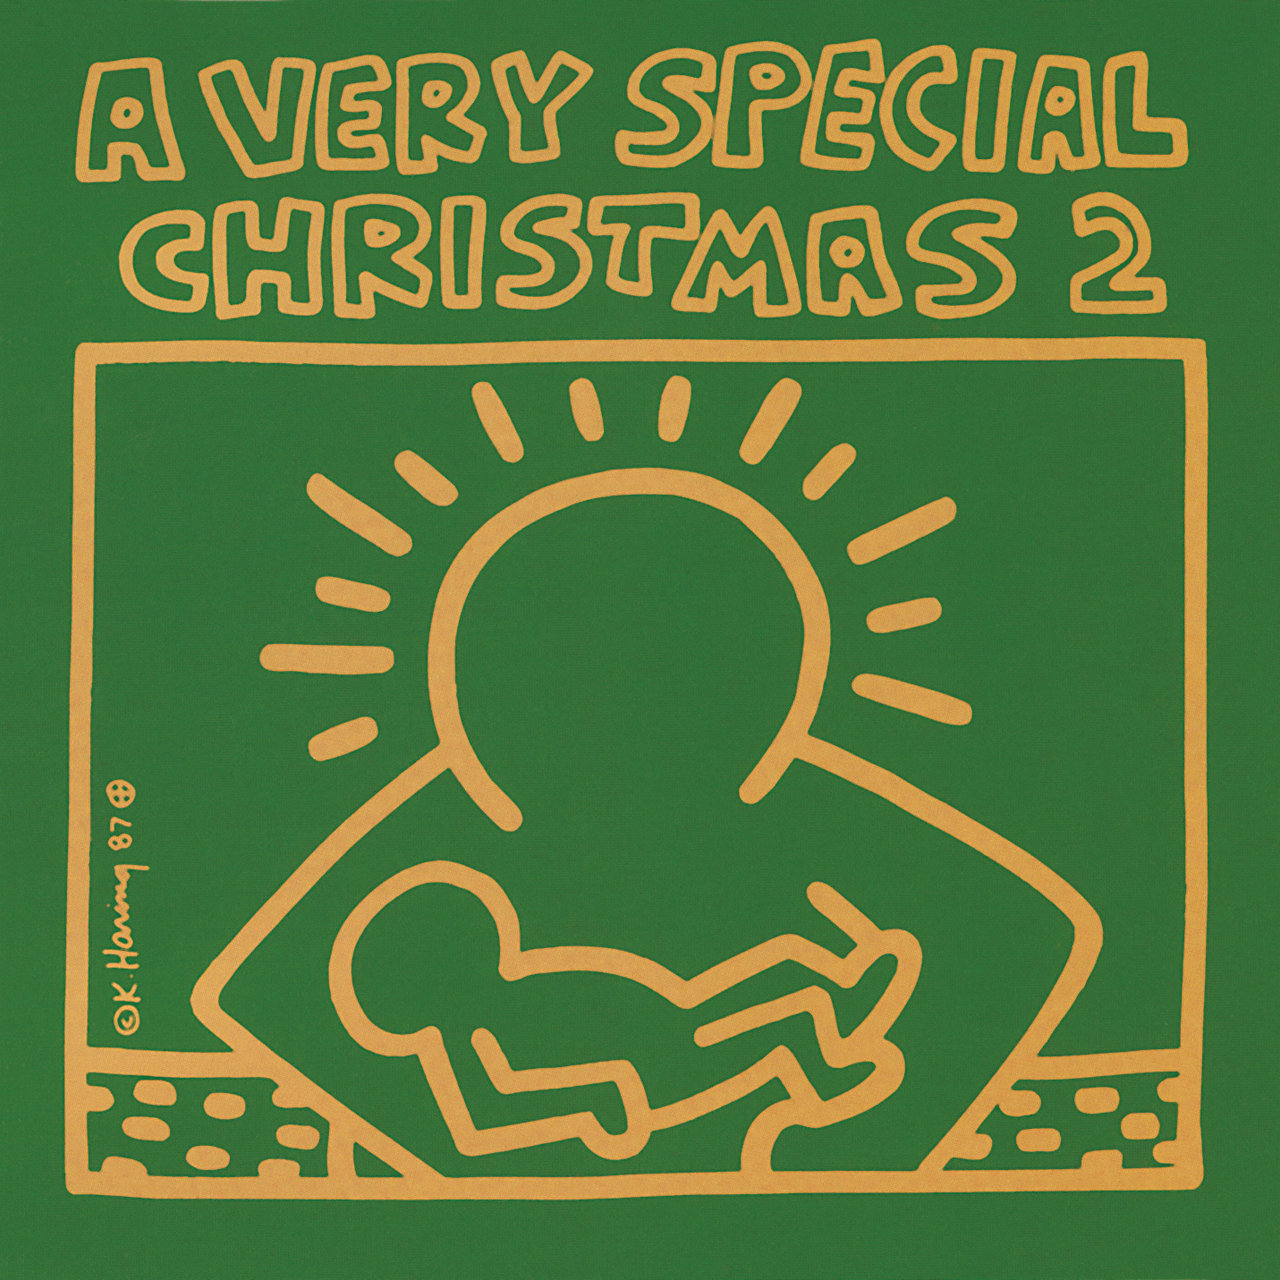 A Very Special Christmas 2 / Various Artists TIDAL